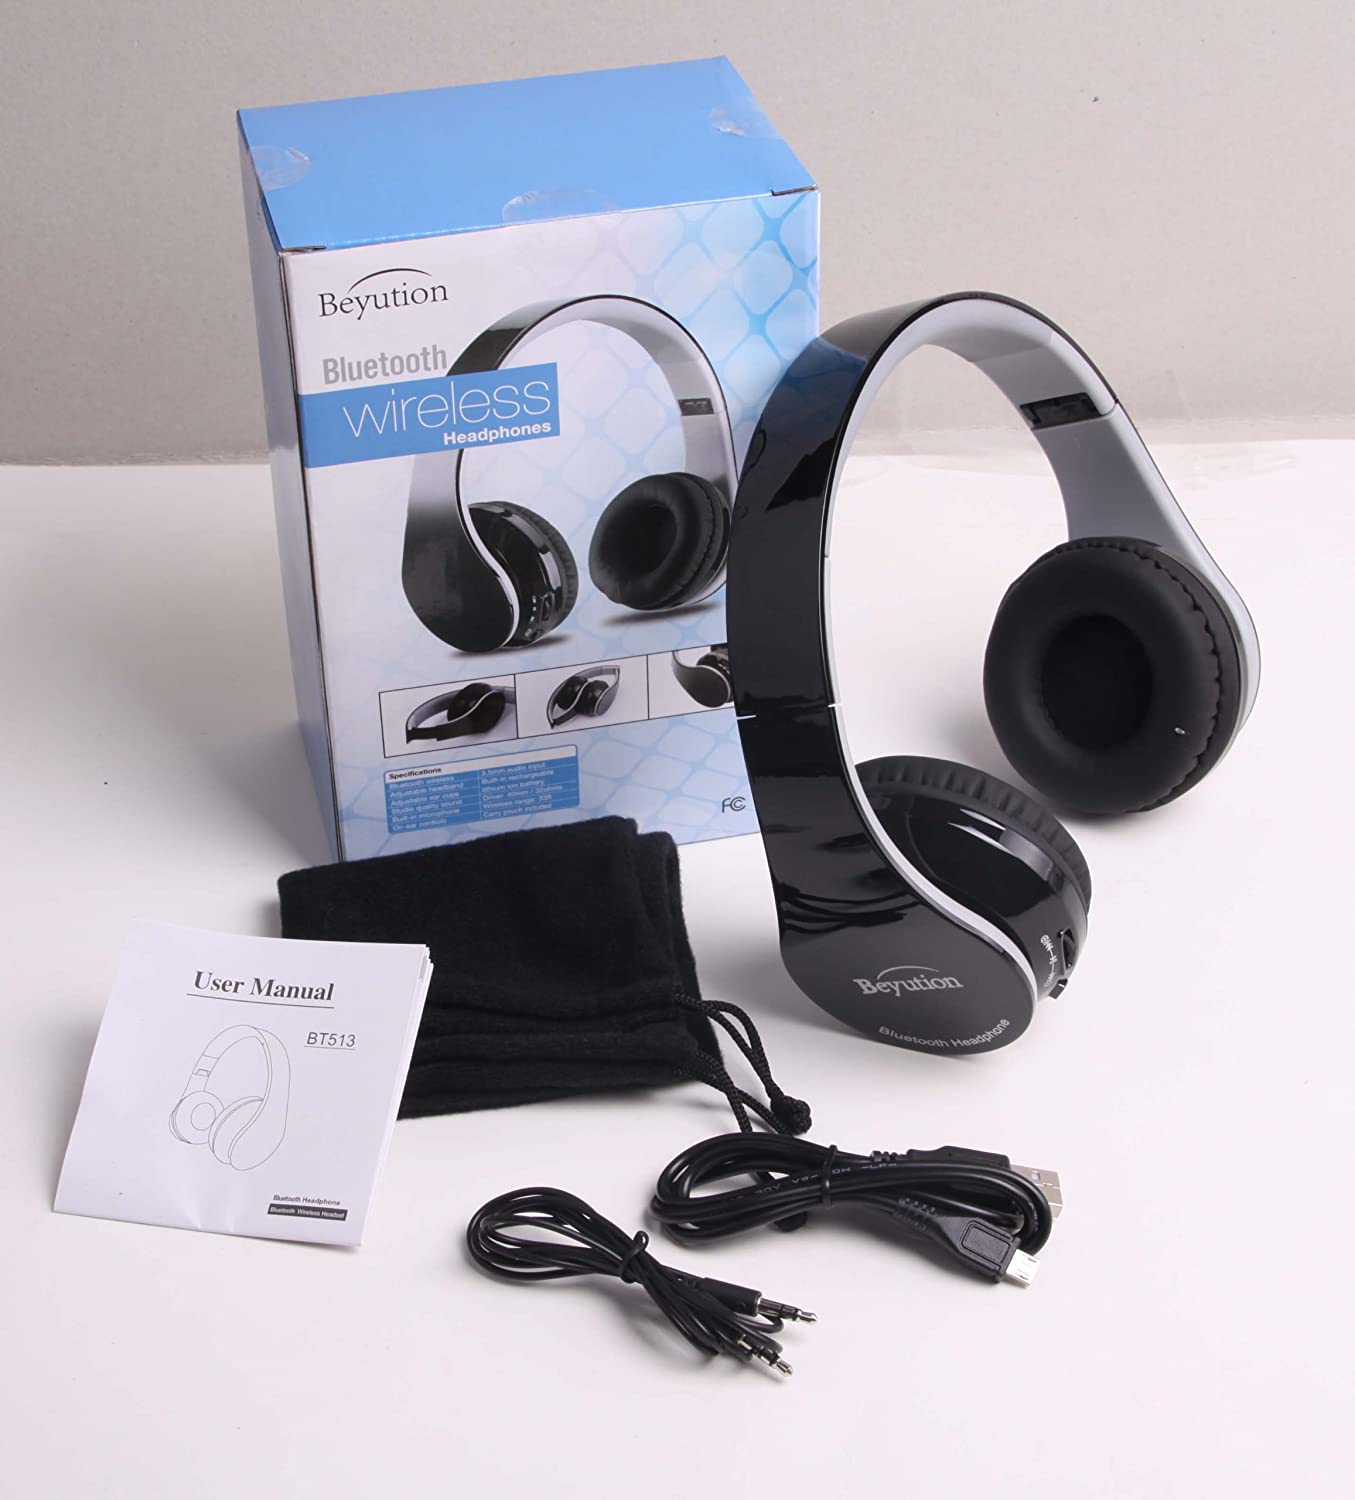 New Wireless Bluetooth Headphones Stereo Hi-Fi Bluetooth Headset with Built in Clearly Mic-Phone, Beyution Black 513